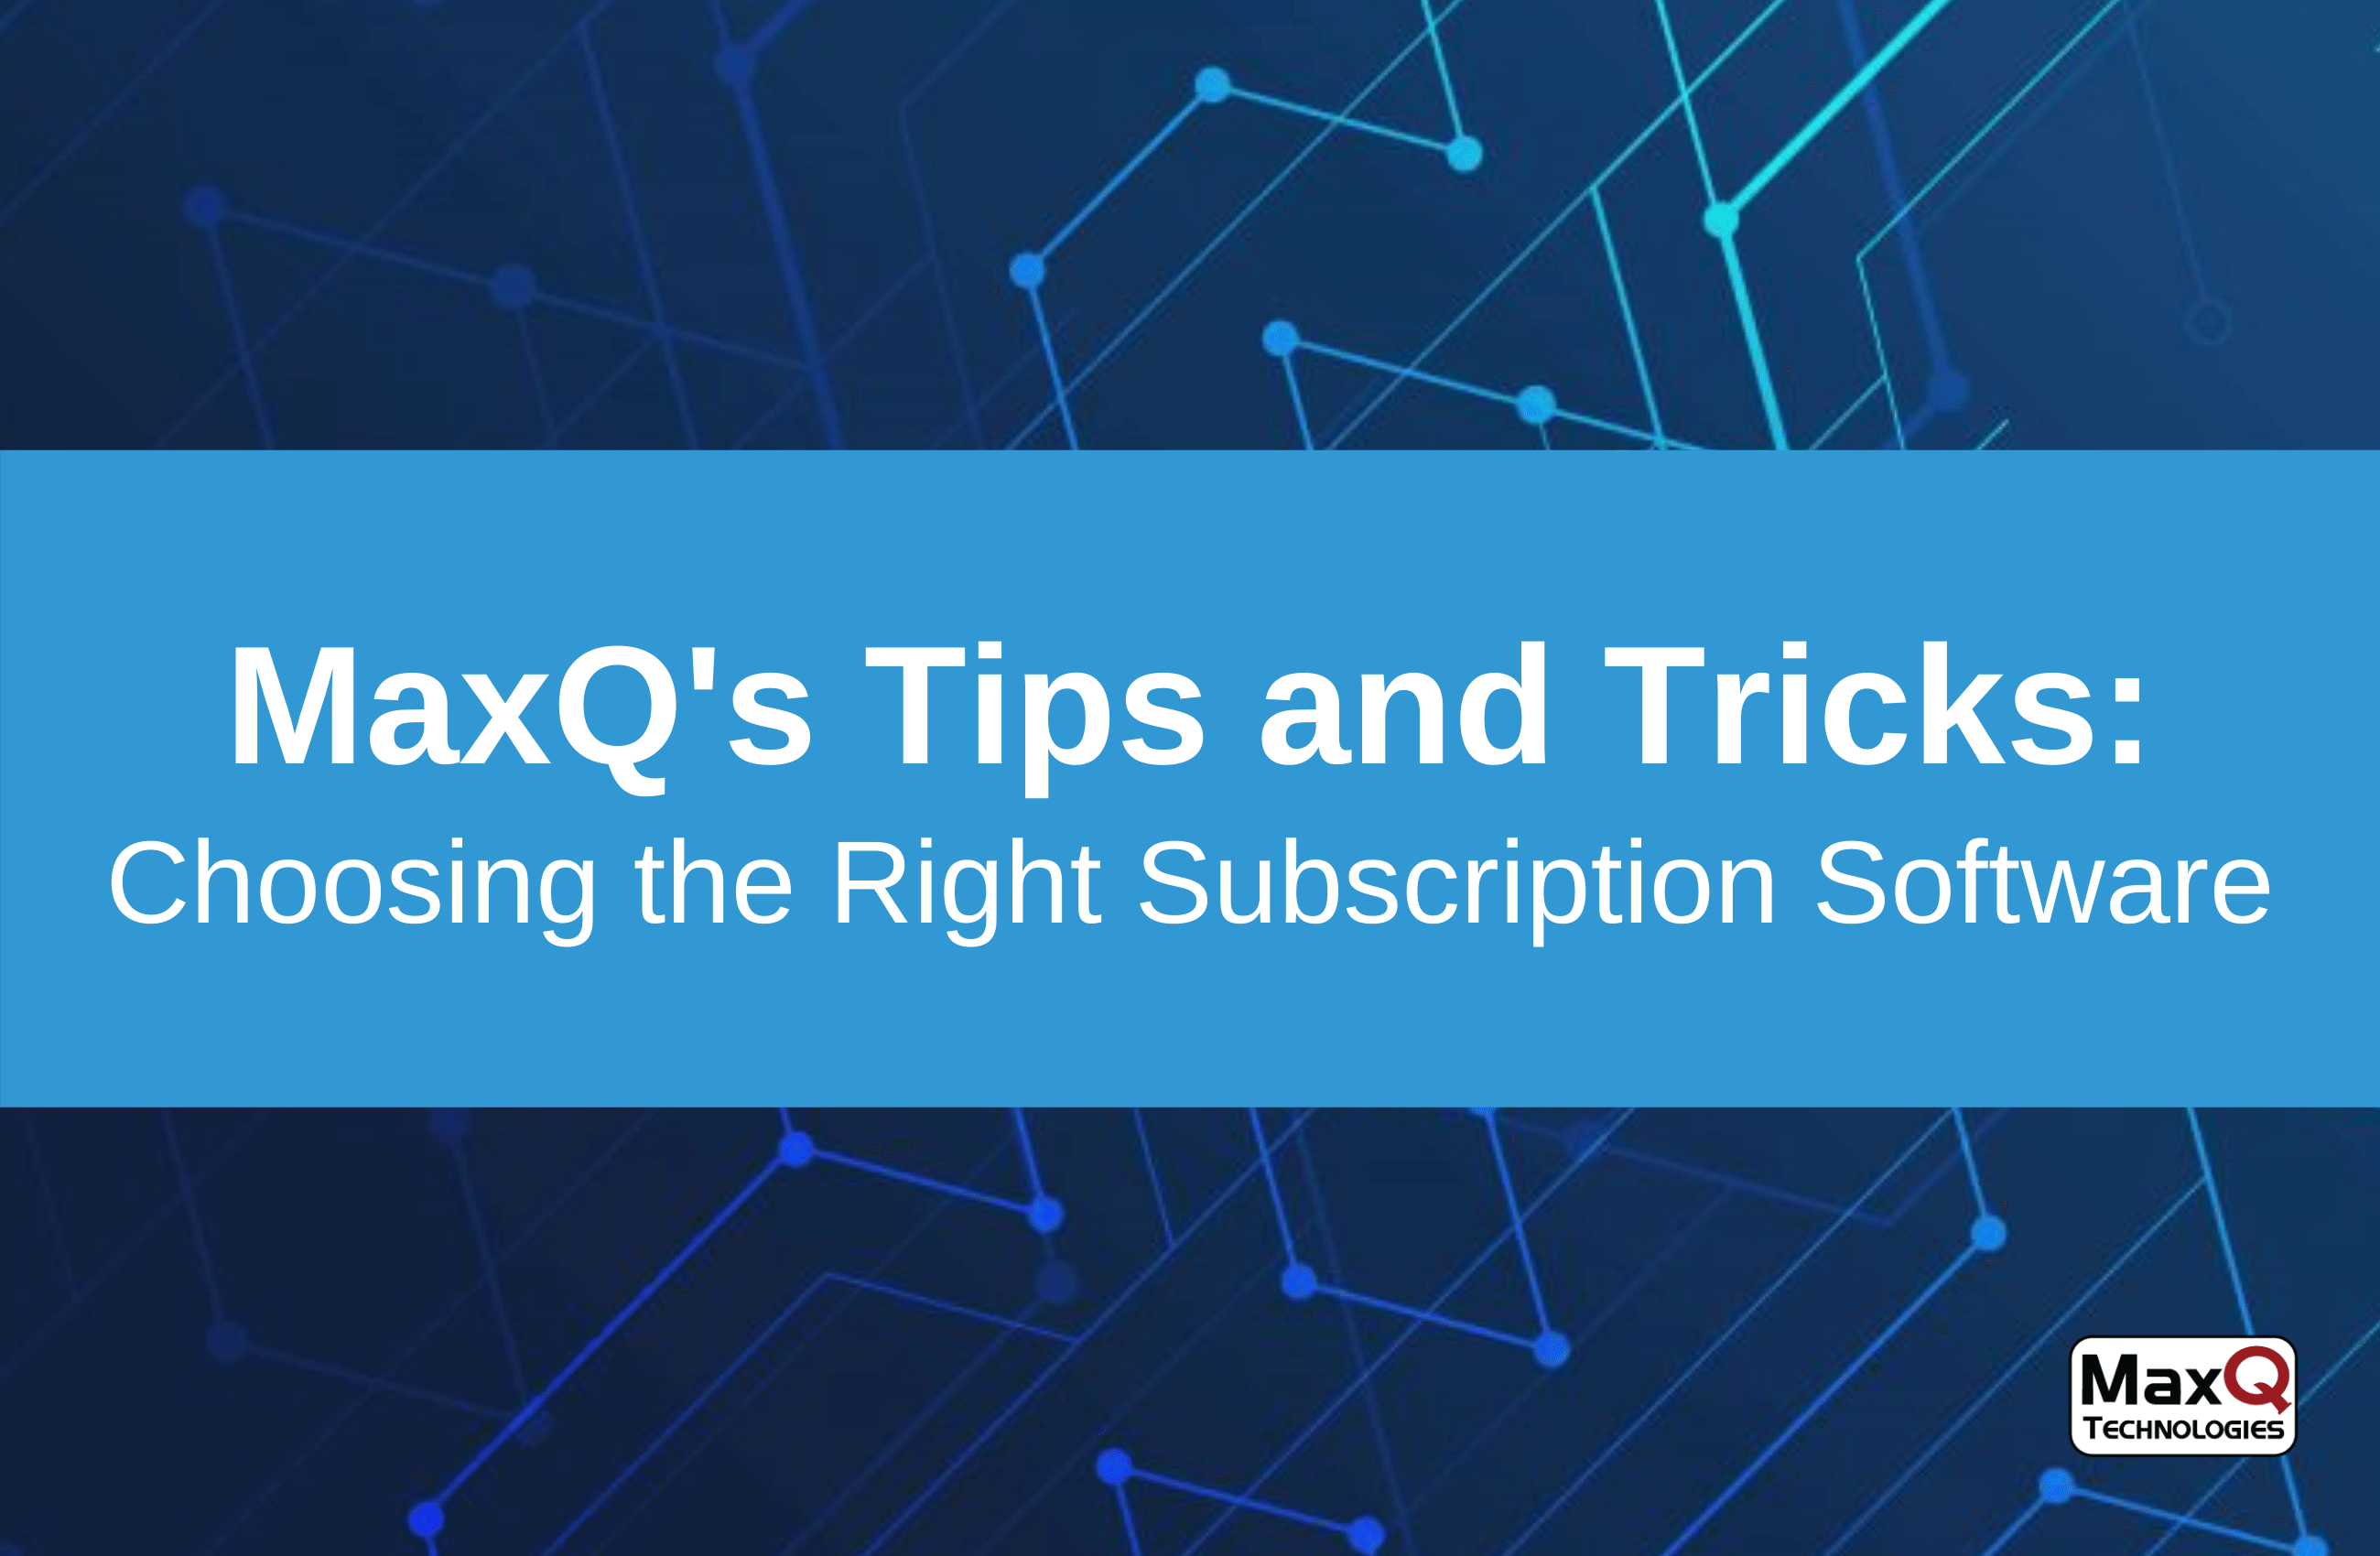 Choosing the Right Subscription Software